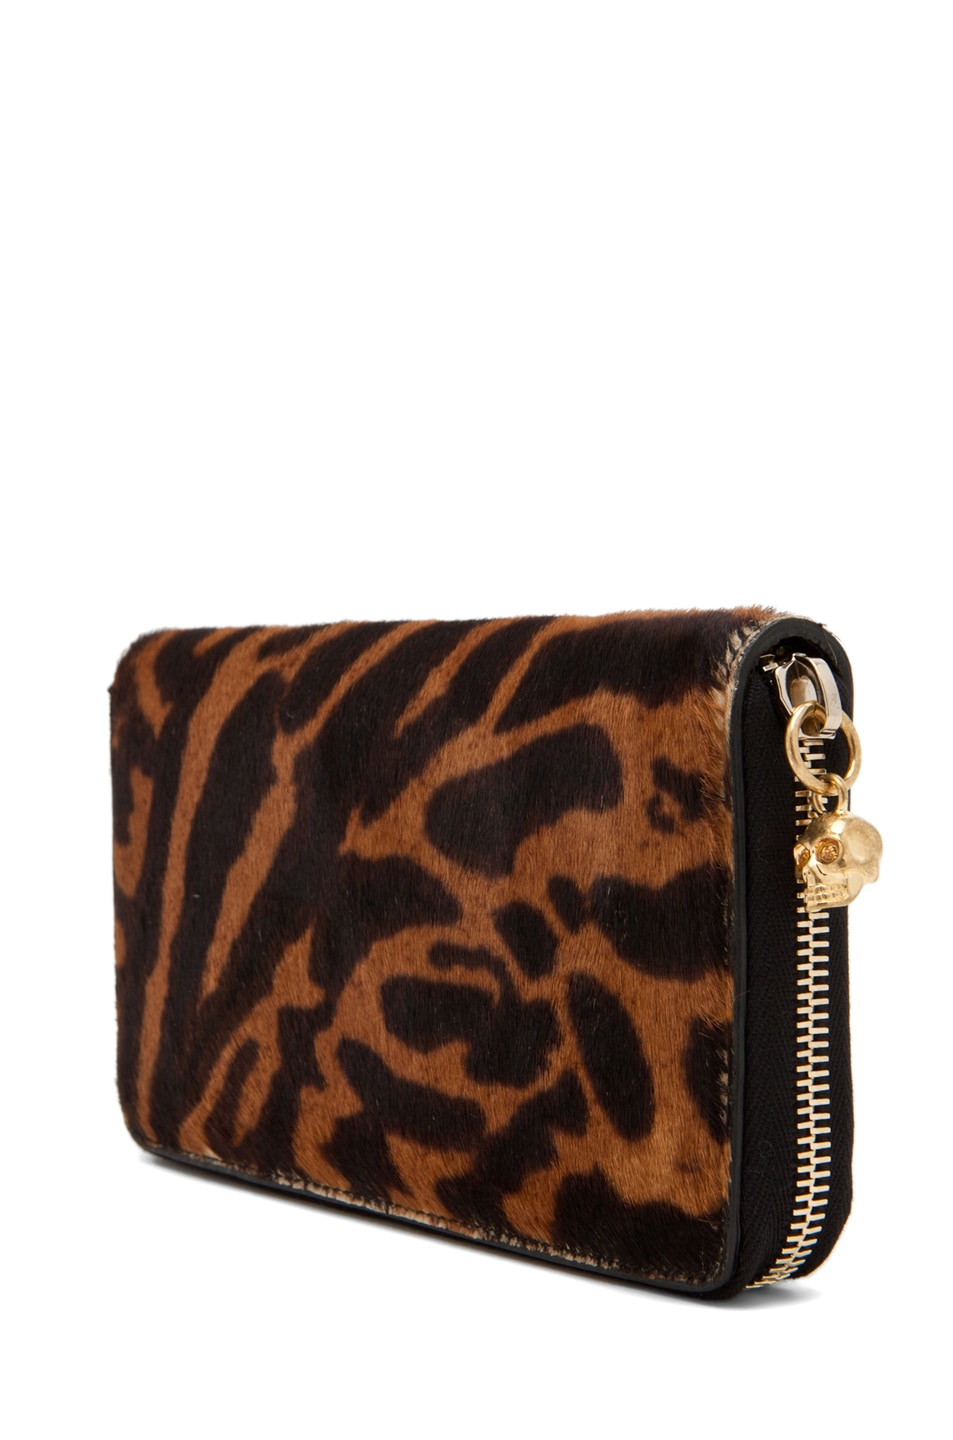 Image 3 of Alexander McQueen Zip Wallet in Natural/Black